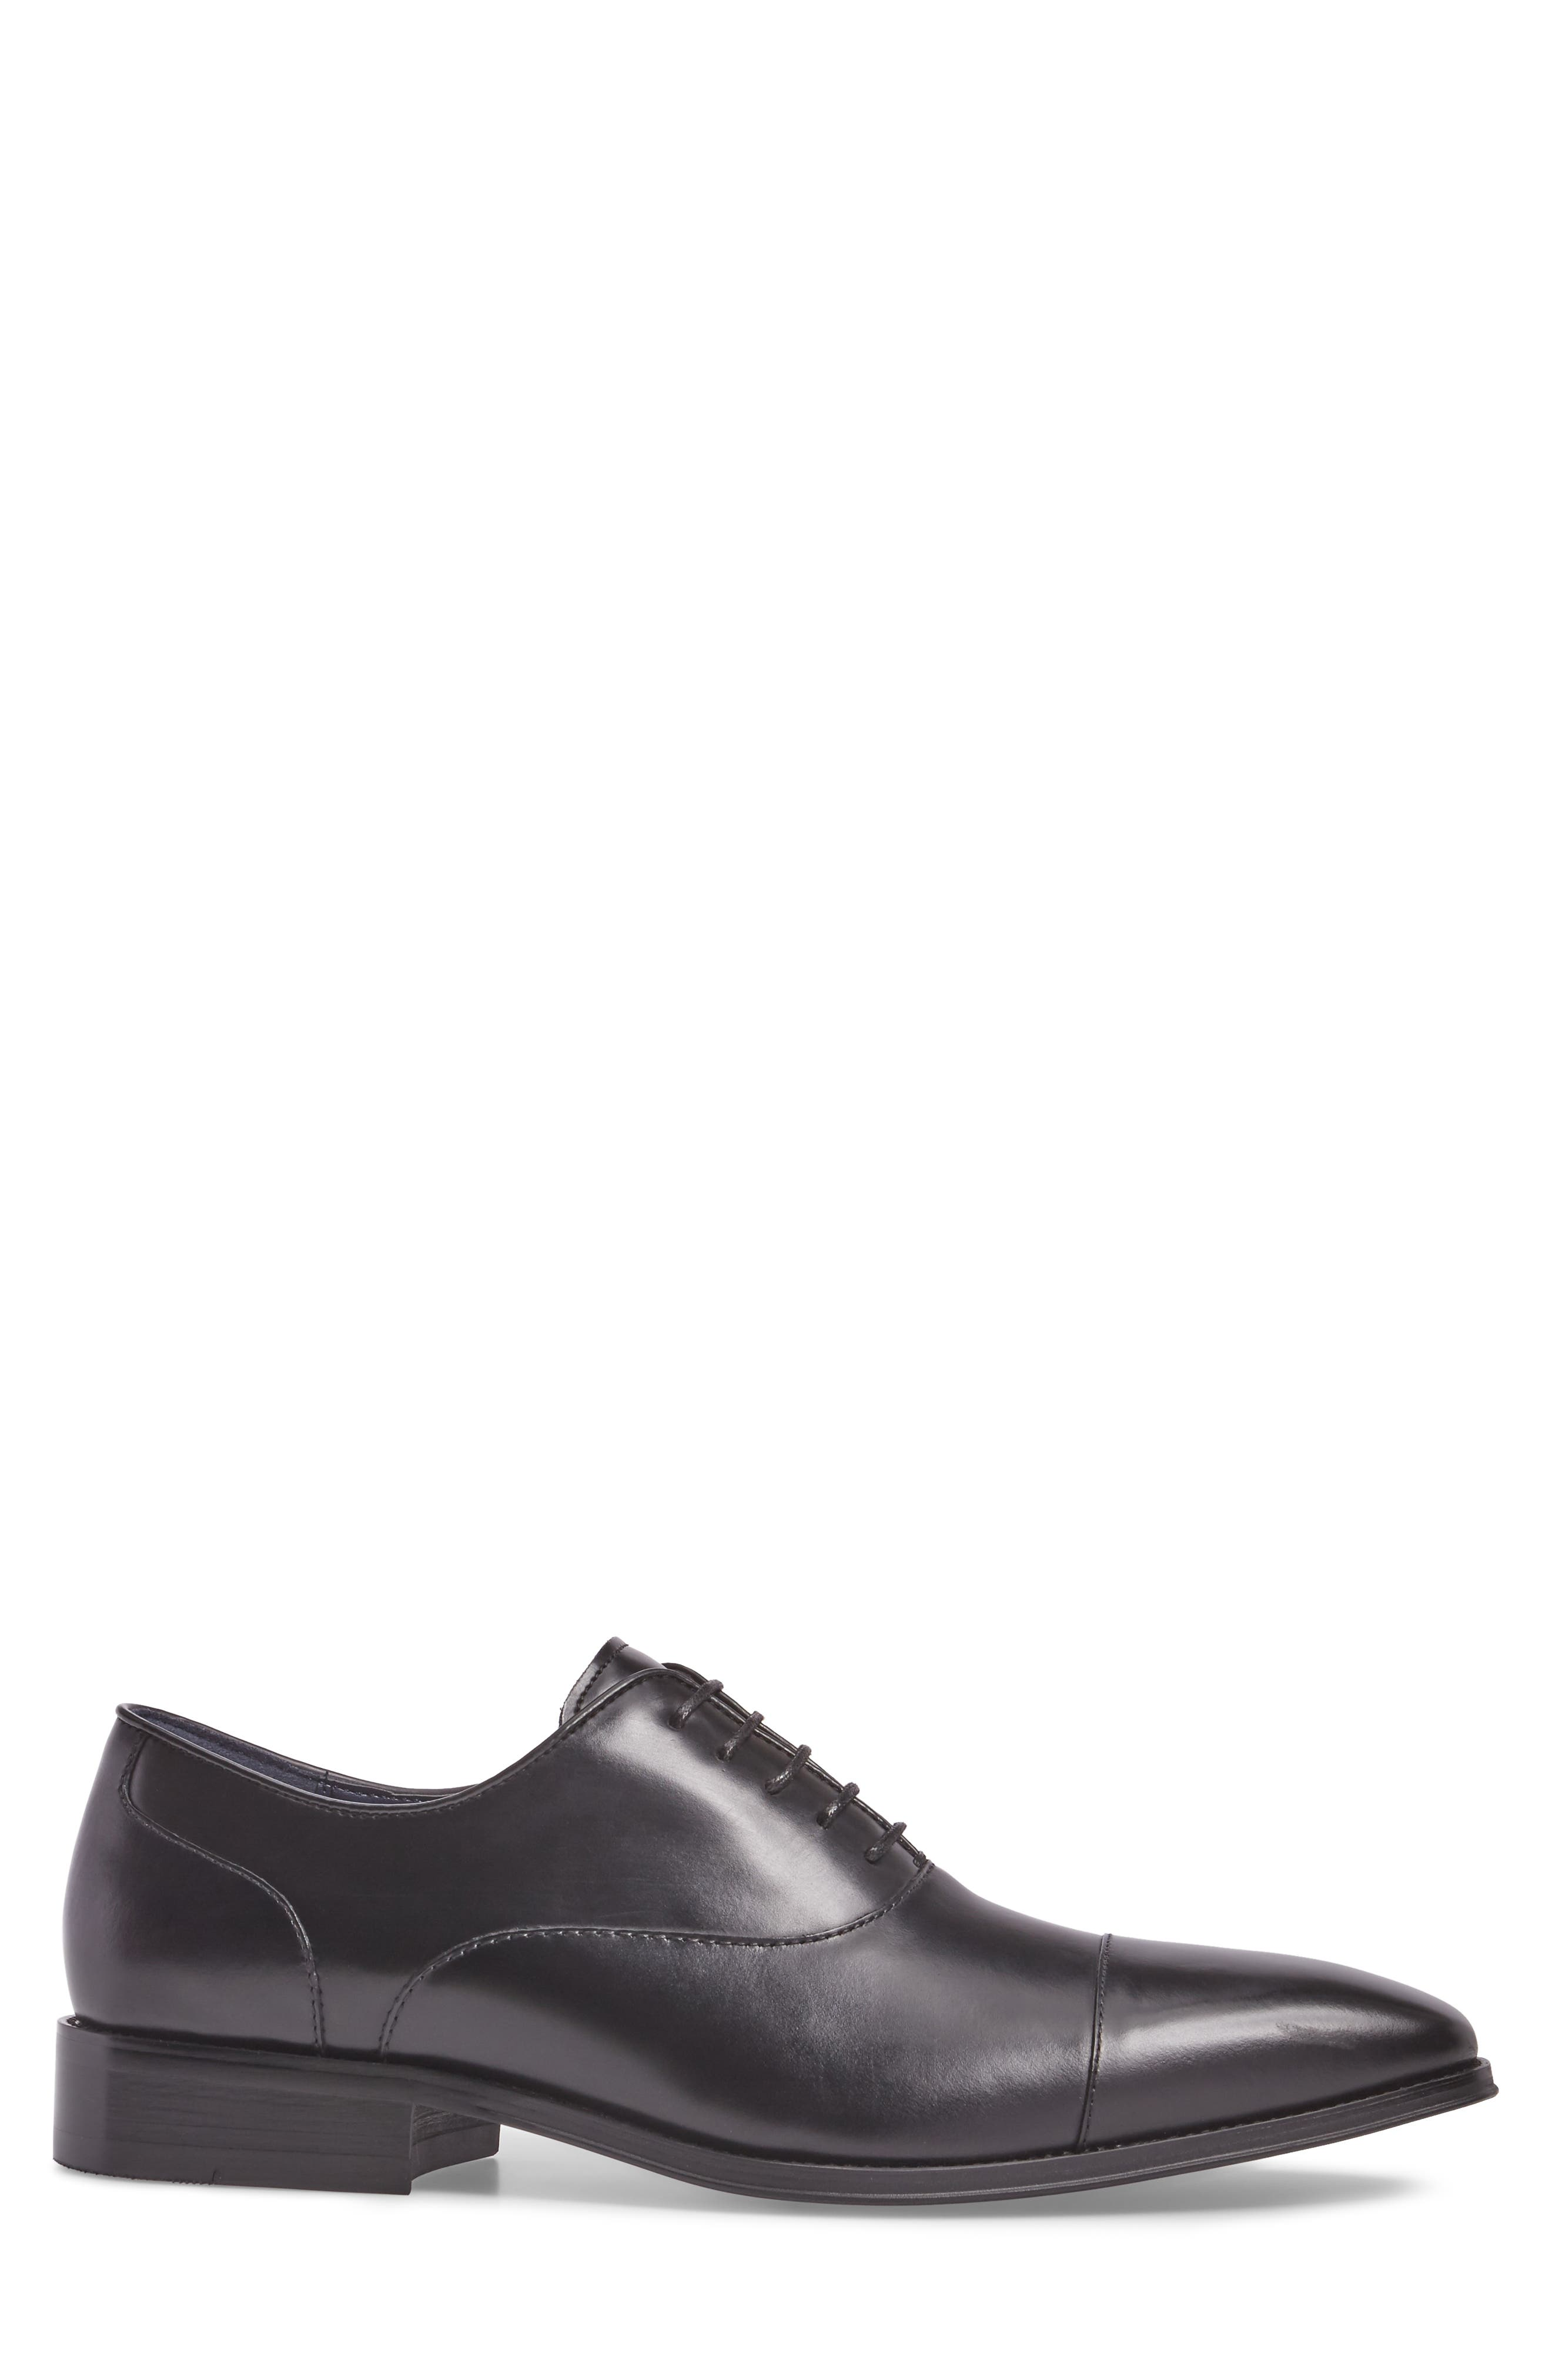 Alternate Image 3  - Kenneth Cole Reaction Cap Toe Oxford (Men)